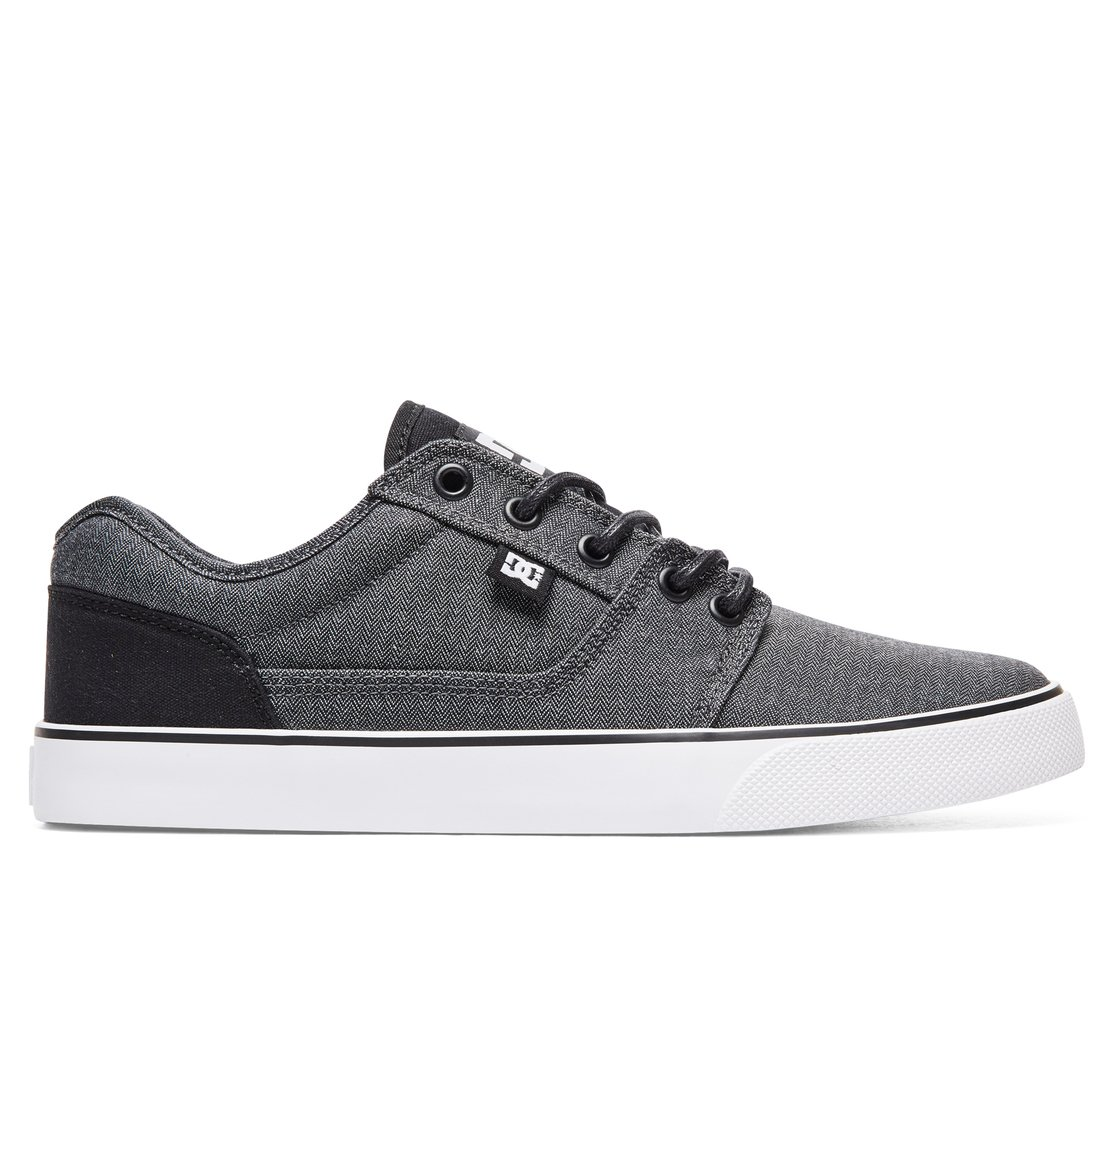 dc shoes Tonik TX SE - Scarpe da Uomo - Blue - DC Shoes YLndb